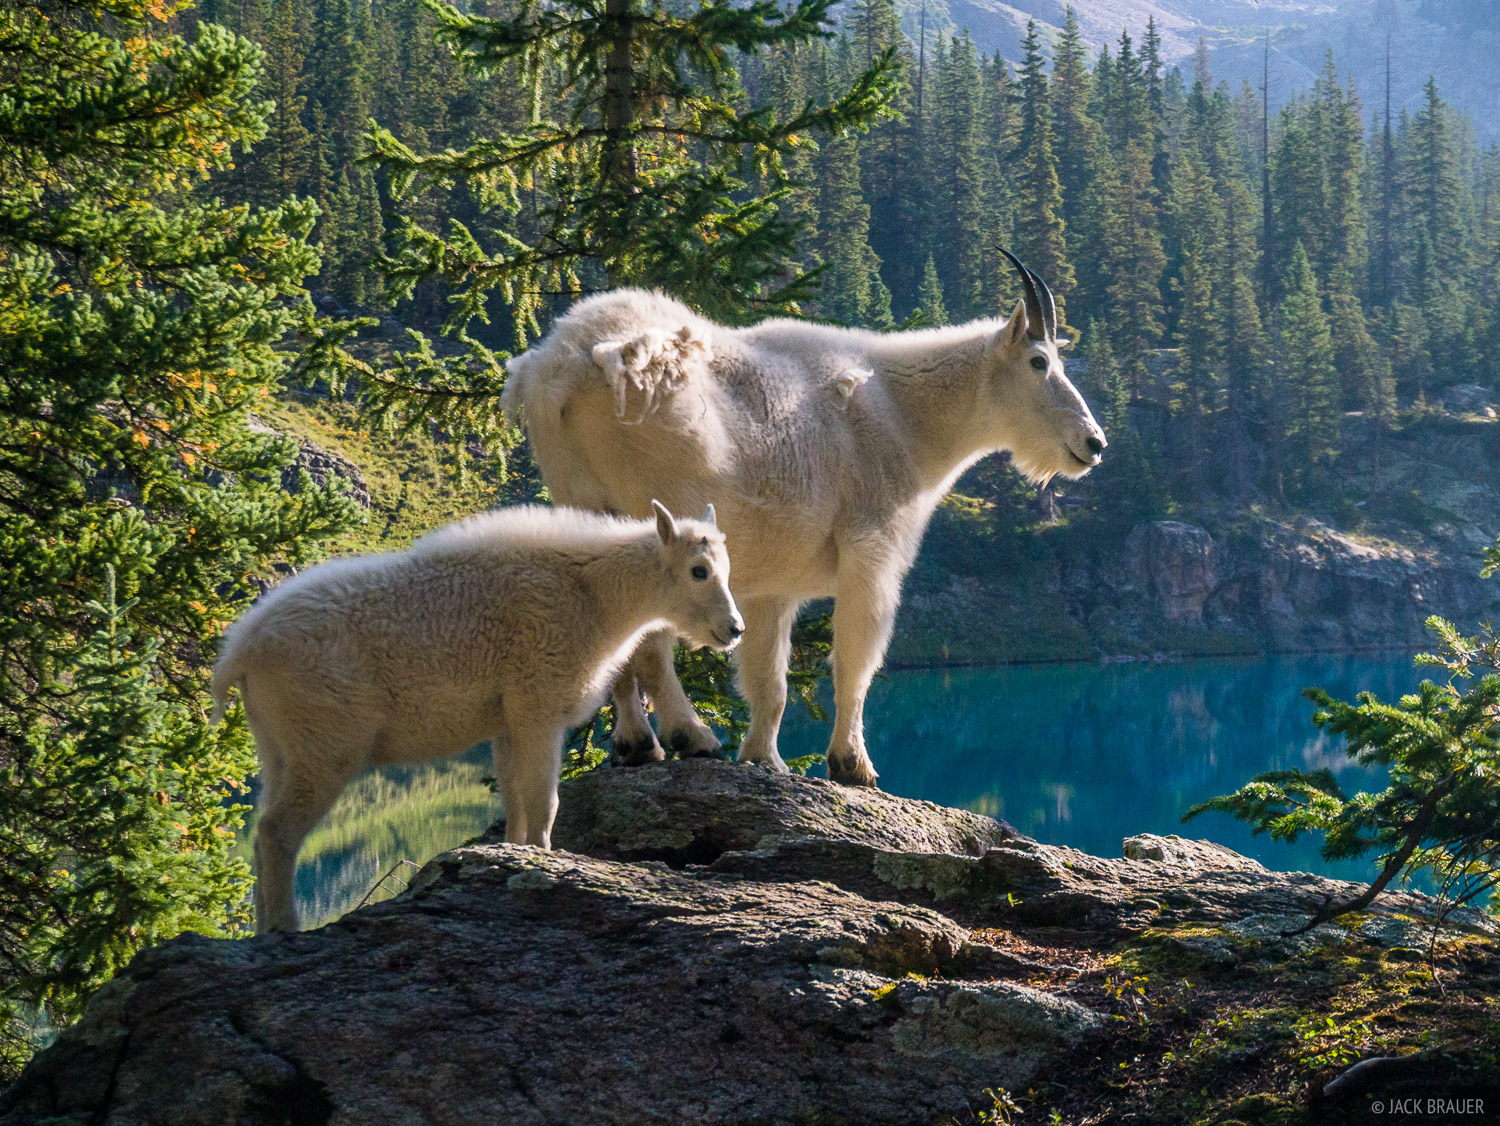 Mountain goat mom and kid in the Weminuche Wilderness.